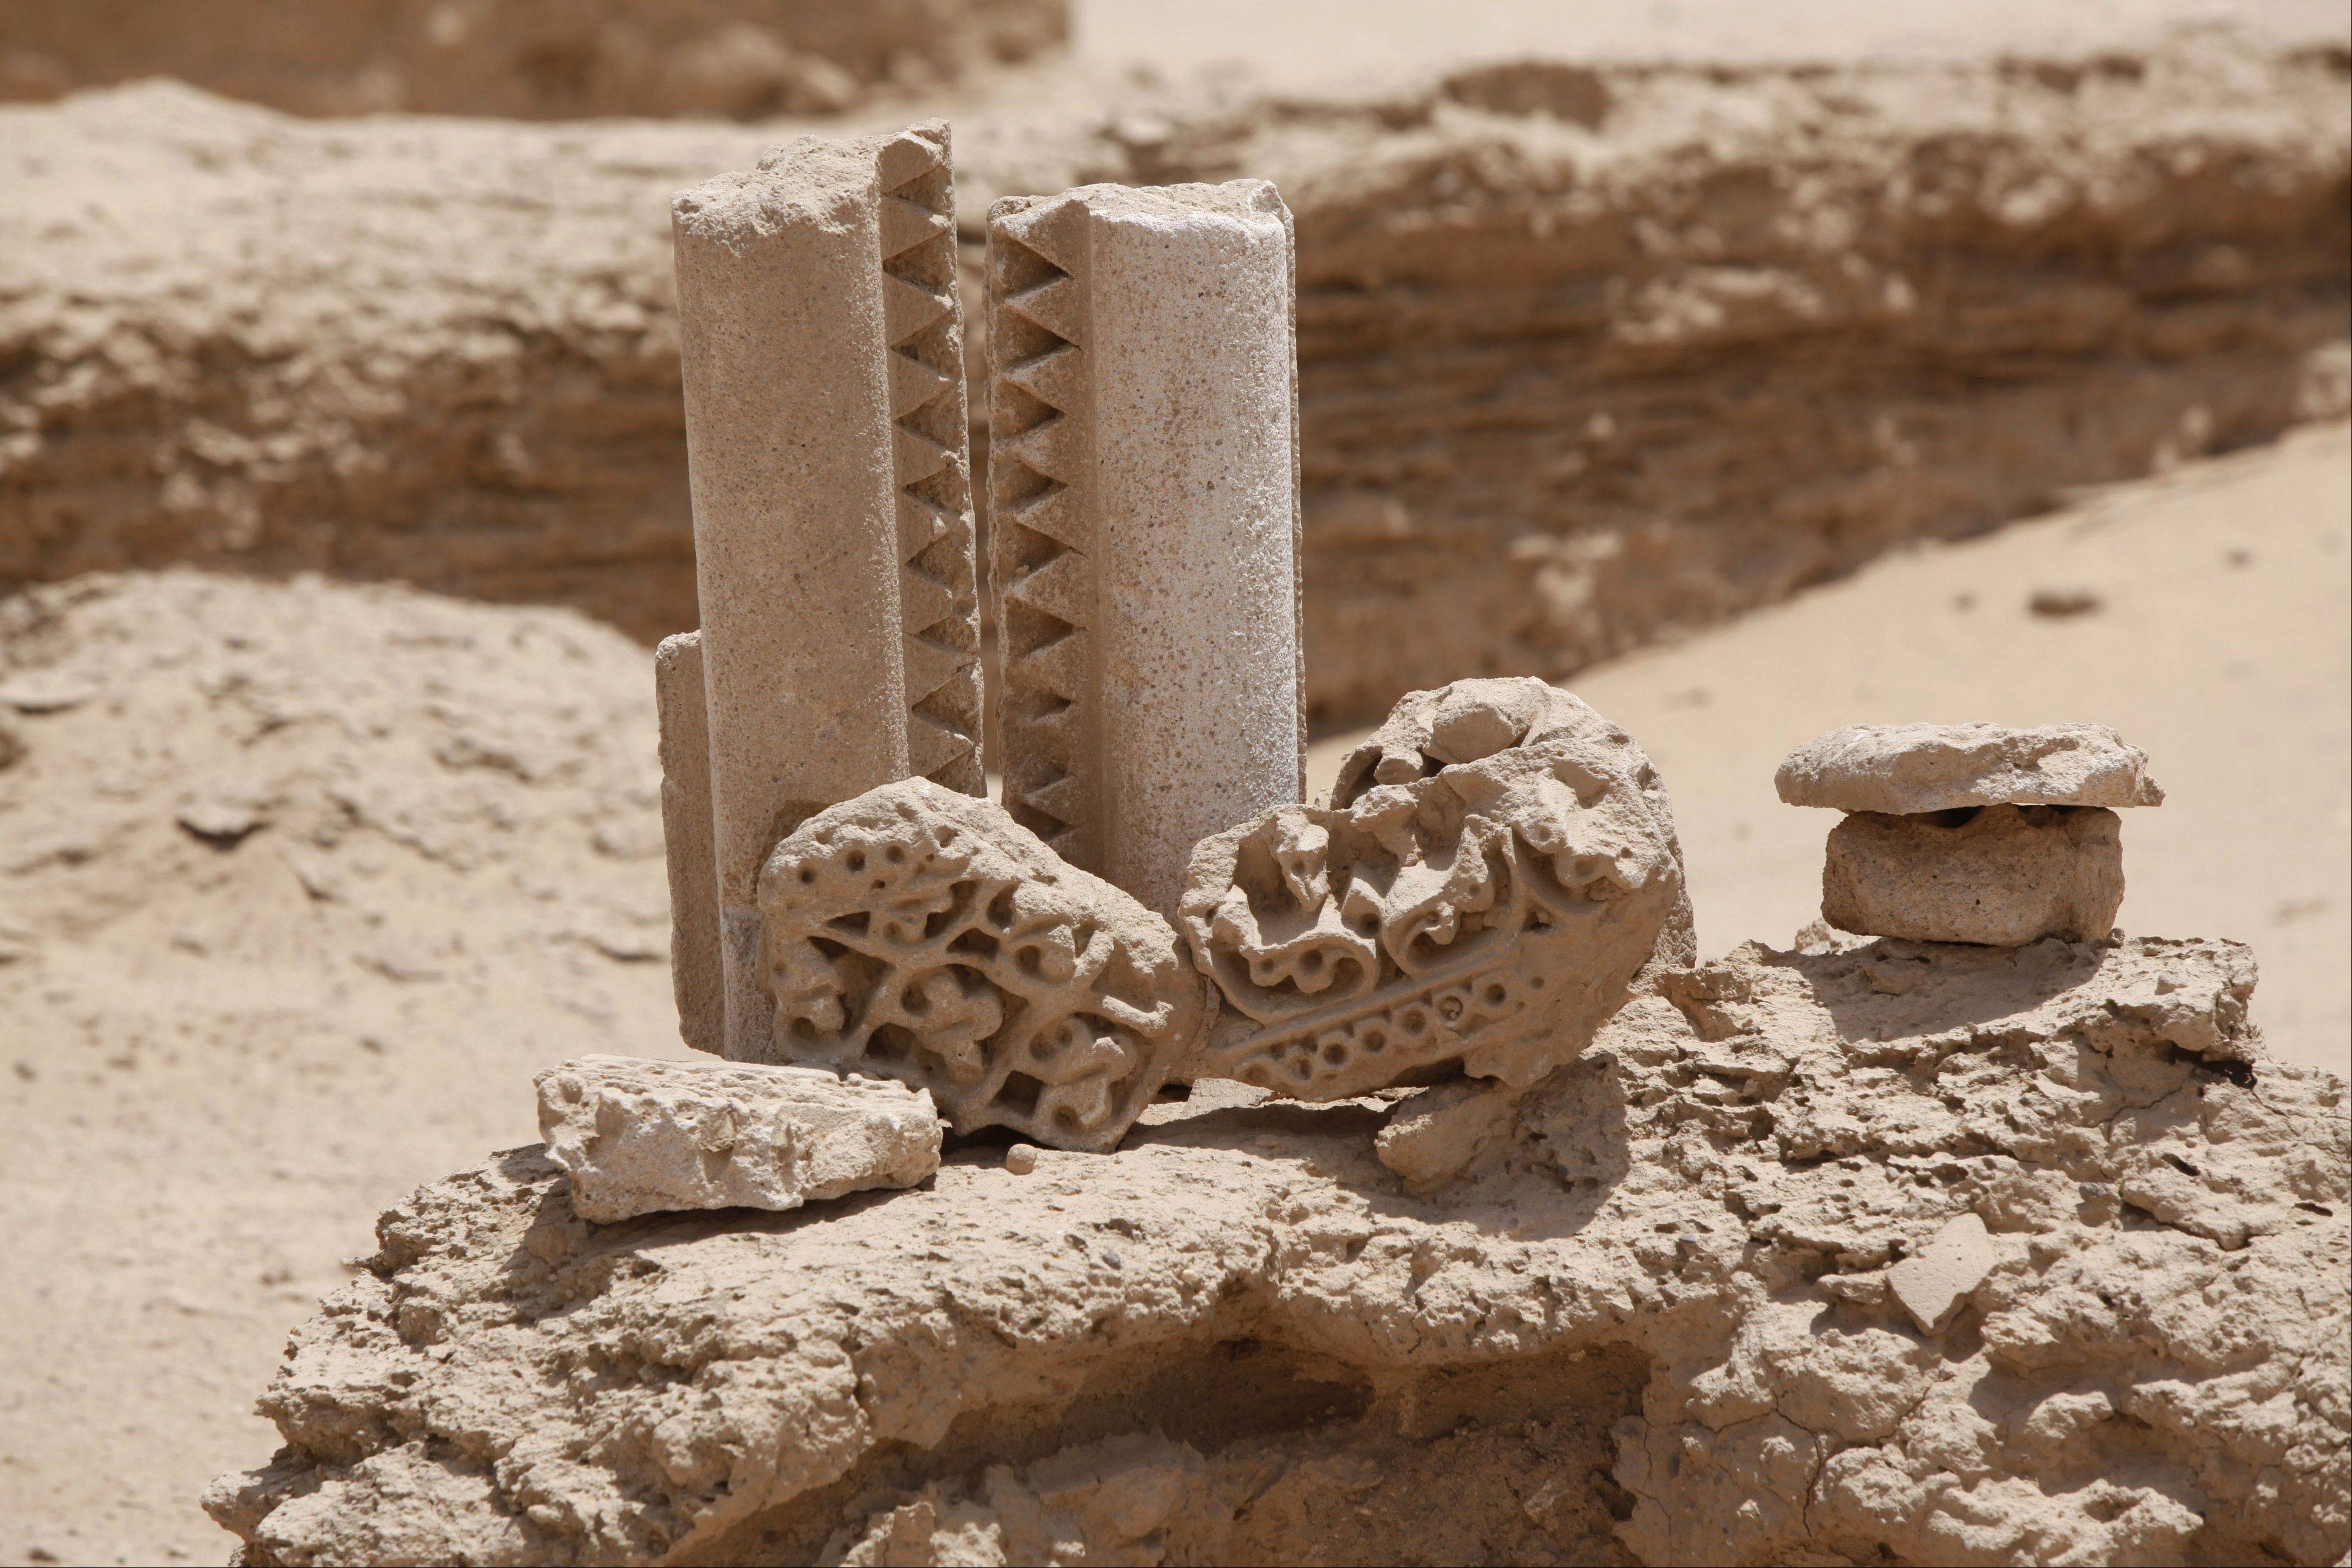 Artifacts from what scholars think may be from the legendary Arab Christian city of Hira are just a few hundred yards from the runway of the airport in the holy Shiite Muslim city of Najaf, about 100 miles south of Baghdad.